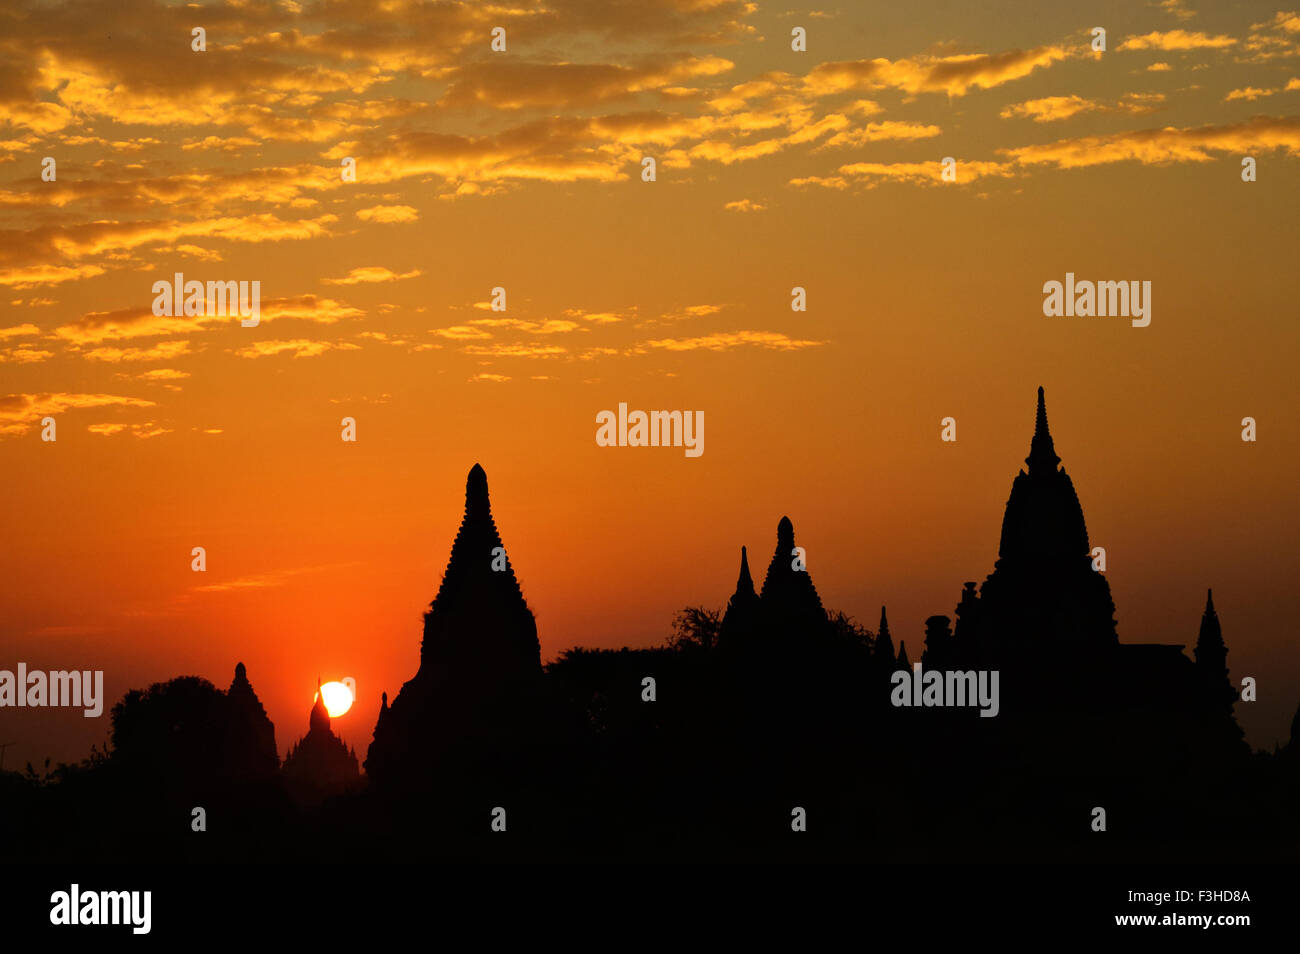 Silhouette of the buddhist temples in Bagan at sunrise, Mandalay Region, Myanmar - Stock Image